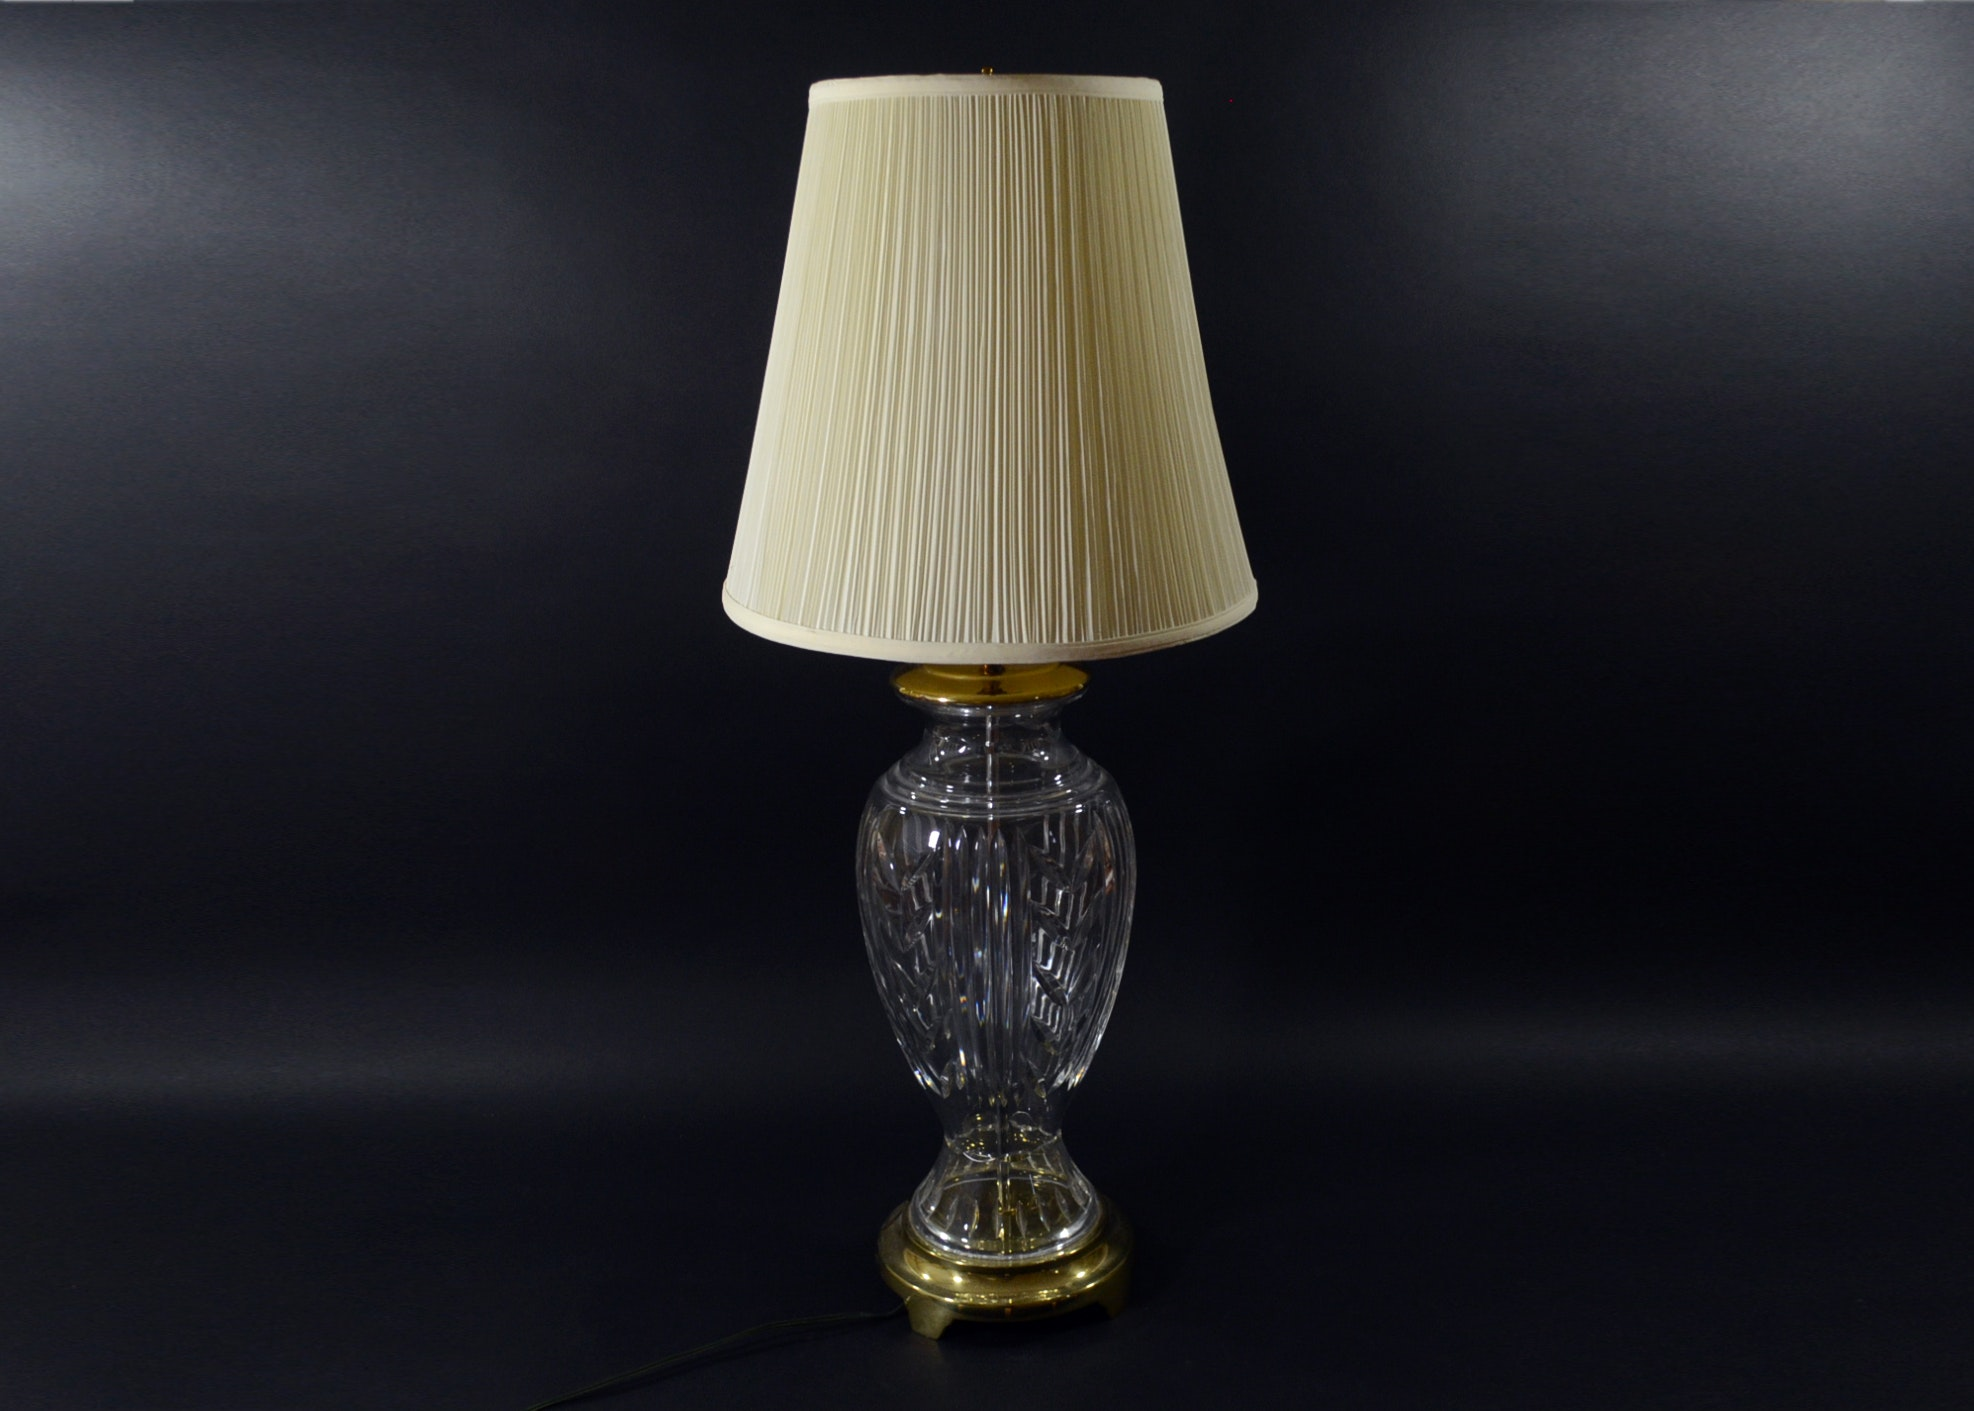 Where To Buy Waterford Crystal Lamp Shades   Waterford Glencar Crystal And  Brass Table Lamp And Shade Ebth